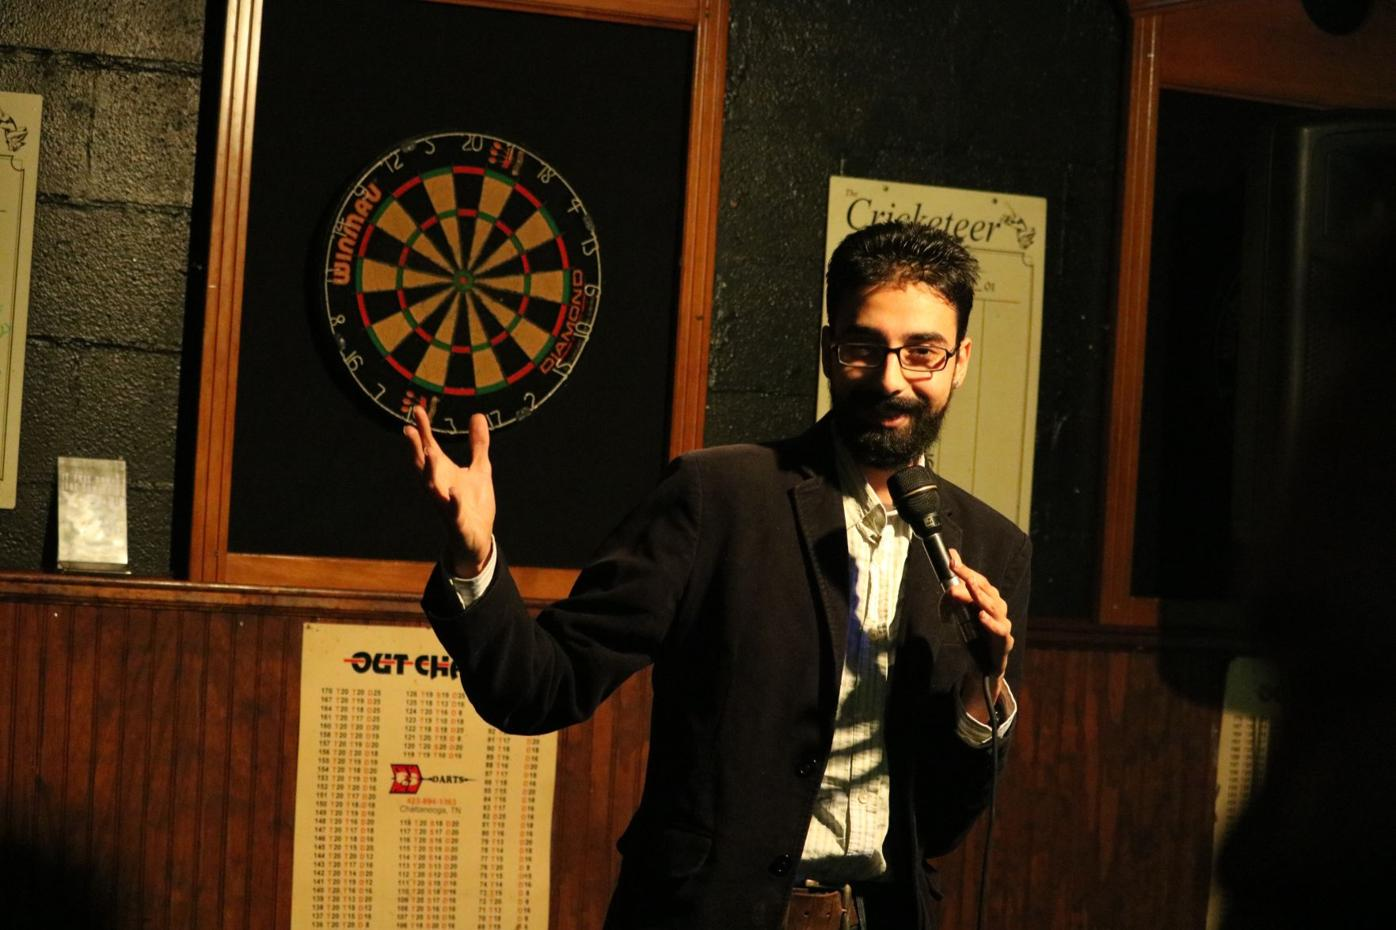 Krish Mohan's comedy tackles race, religion and immigration